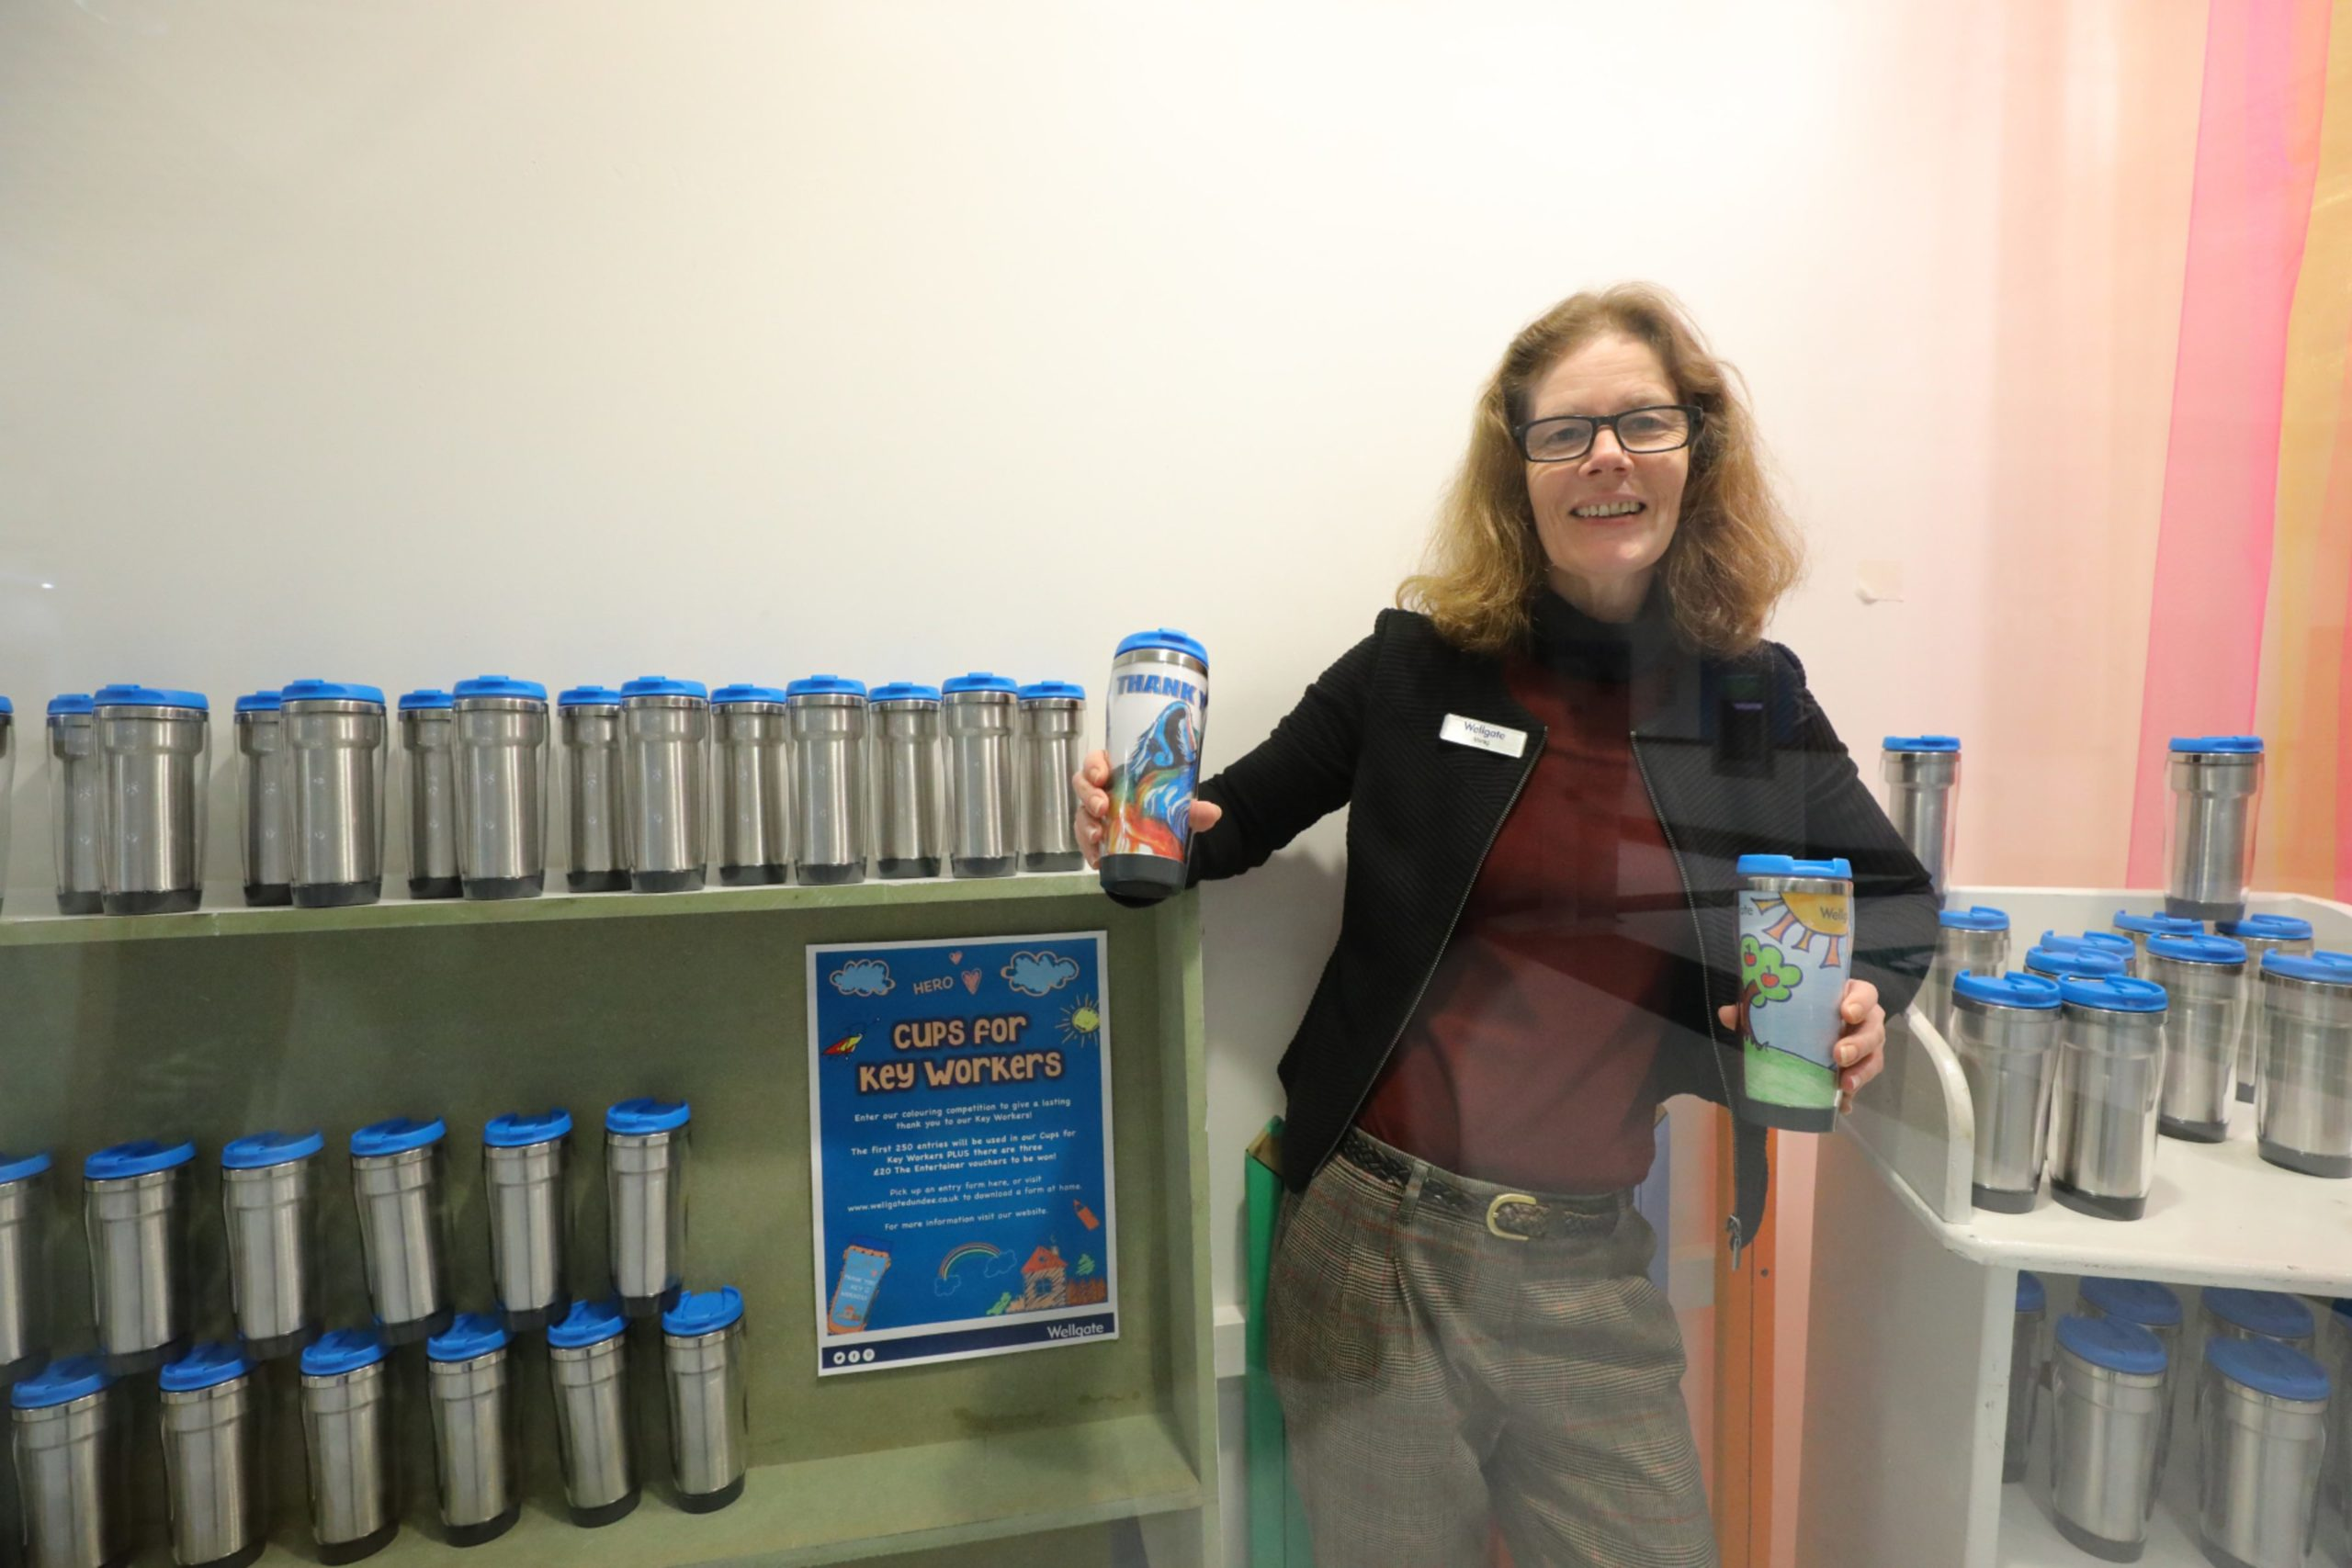 Centre manager, Morag Dennis with the reusable mugs for key workers, which will be designed by school children. (Picture: Dougie Nicolson / DCT Media.)